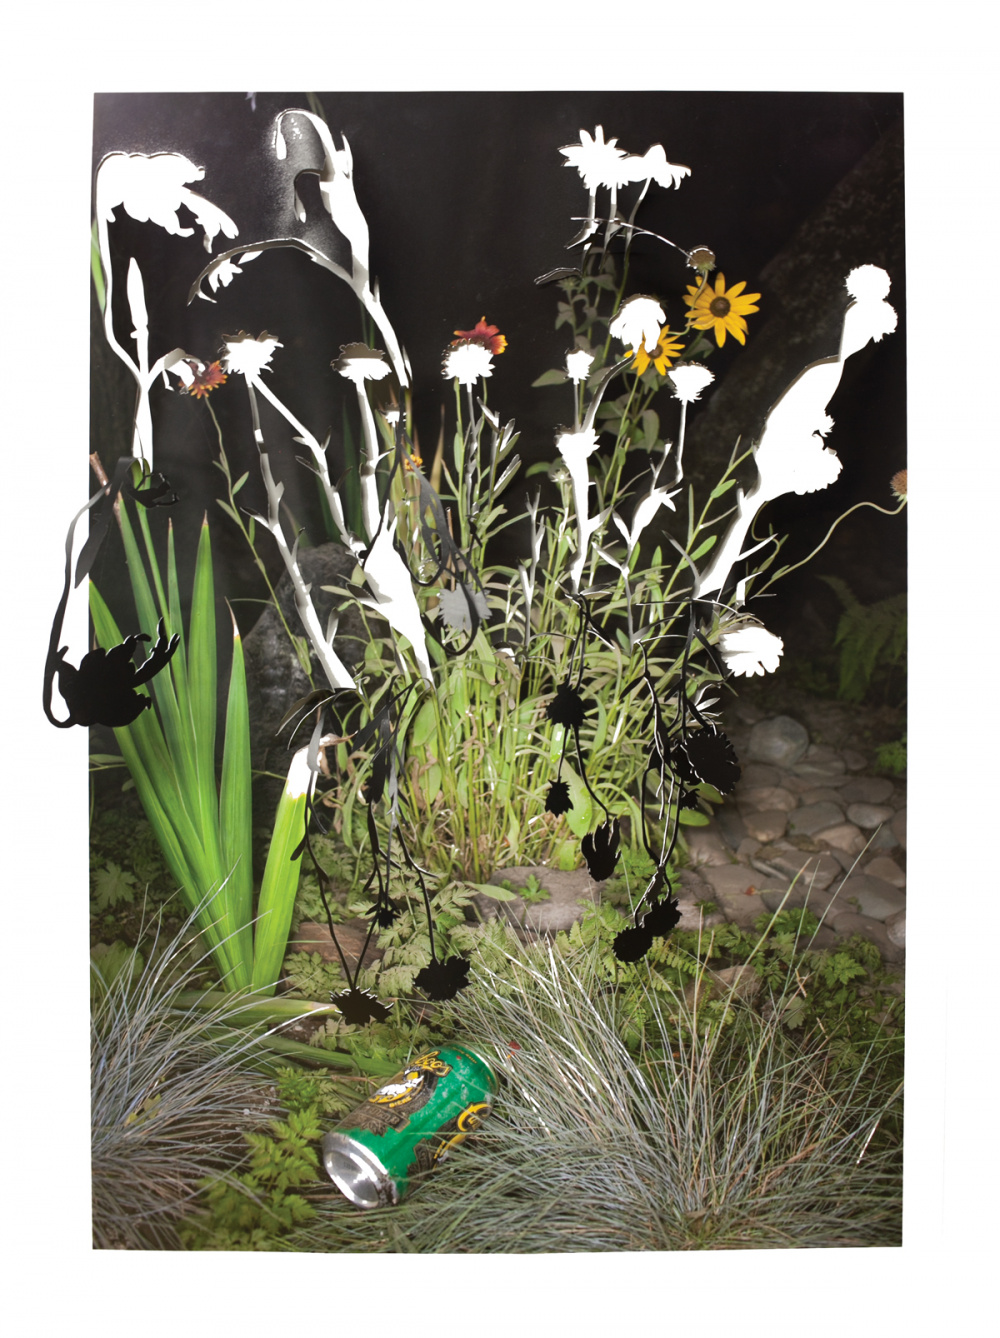 Sarah Anne Johnson, Drooping Flower and Beer Can, 2015. Chromogenic print, 30 x 20